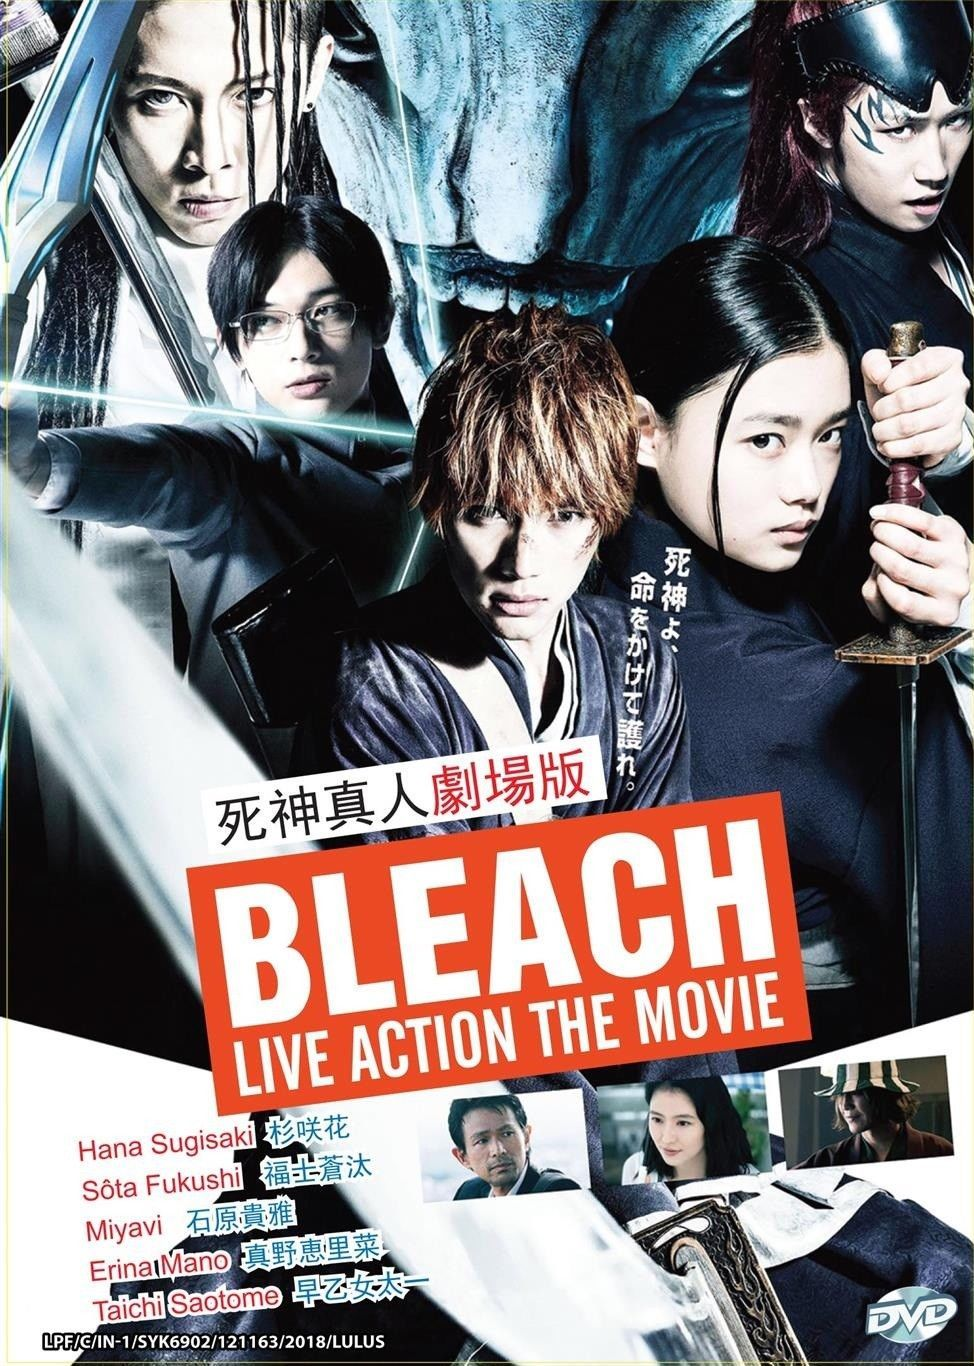 Japanese Movie DVD Bleach Live Action The and 50 similar items